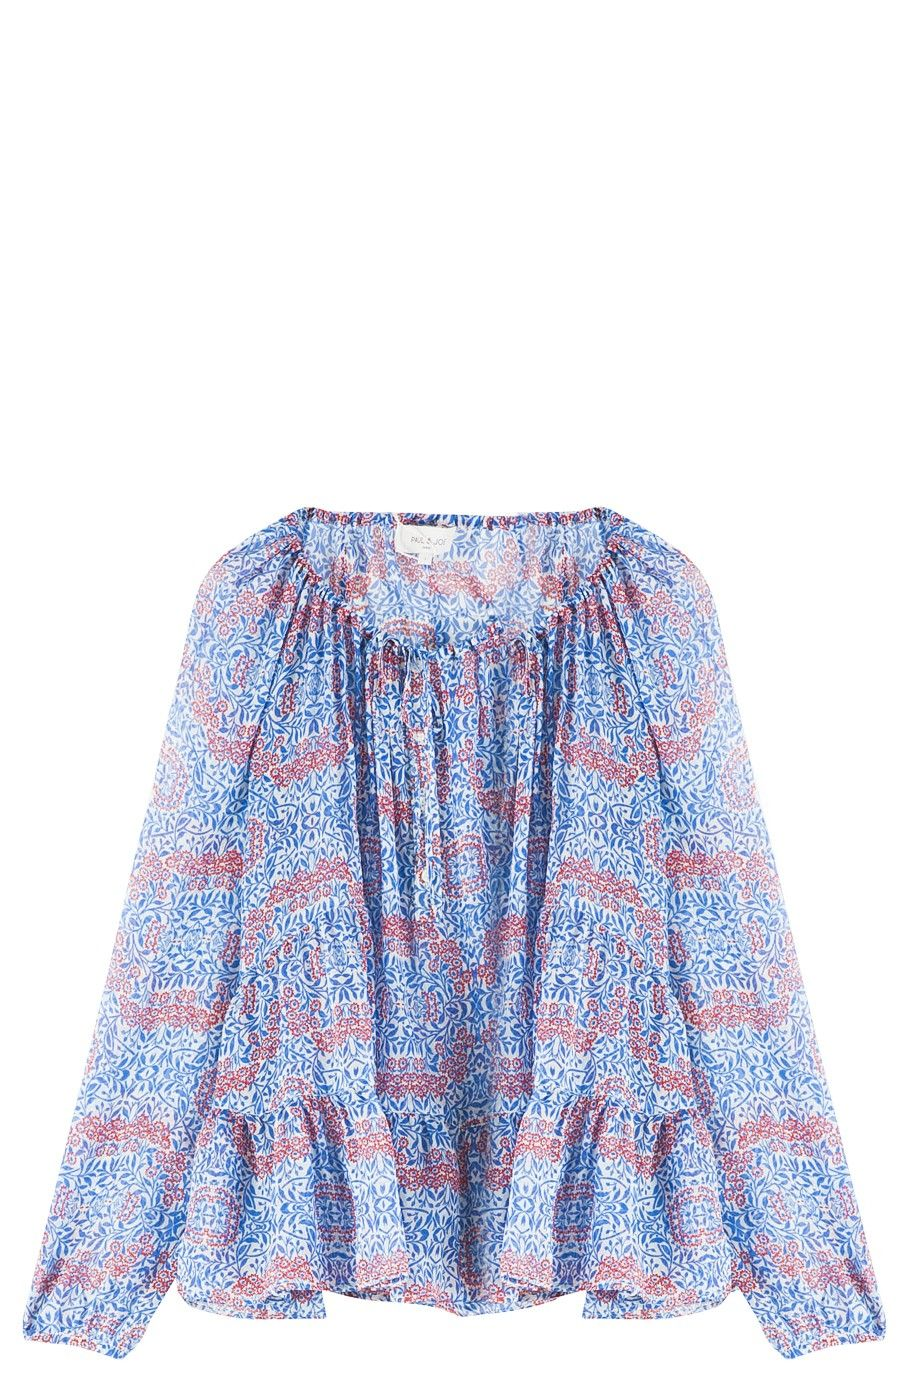 Floral Top By PAUL